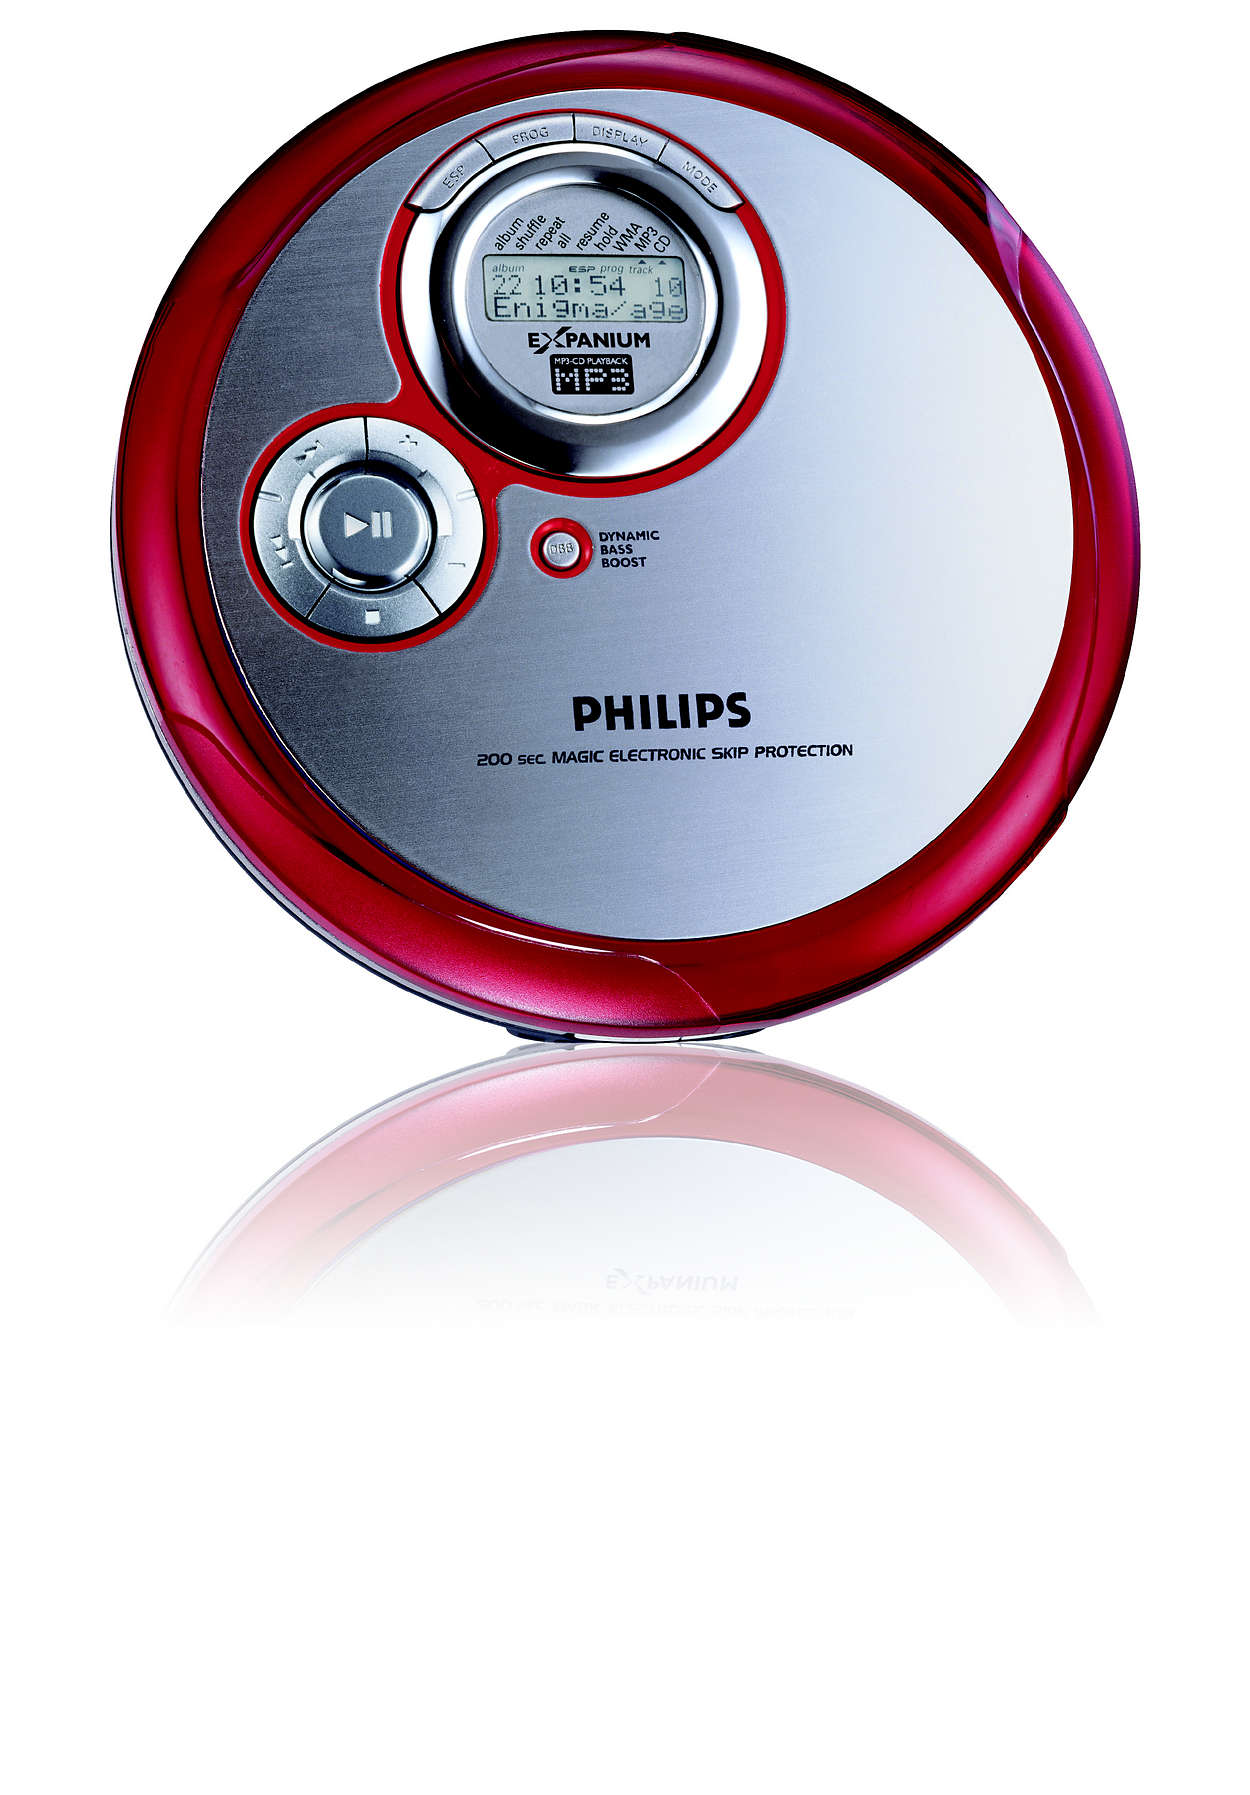 Slim MP3-CD player